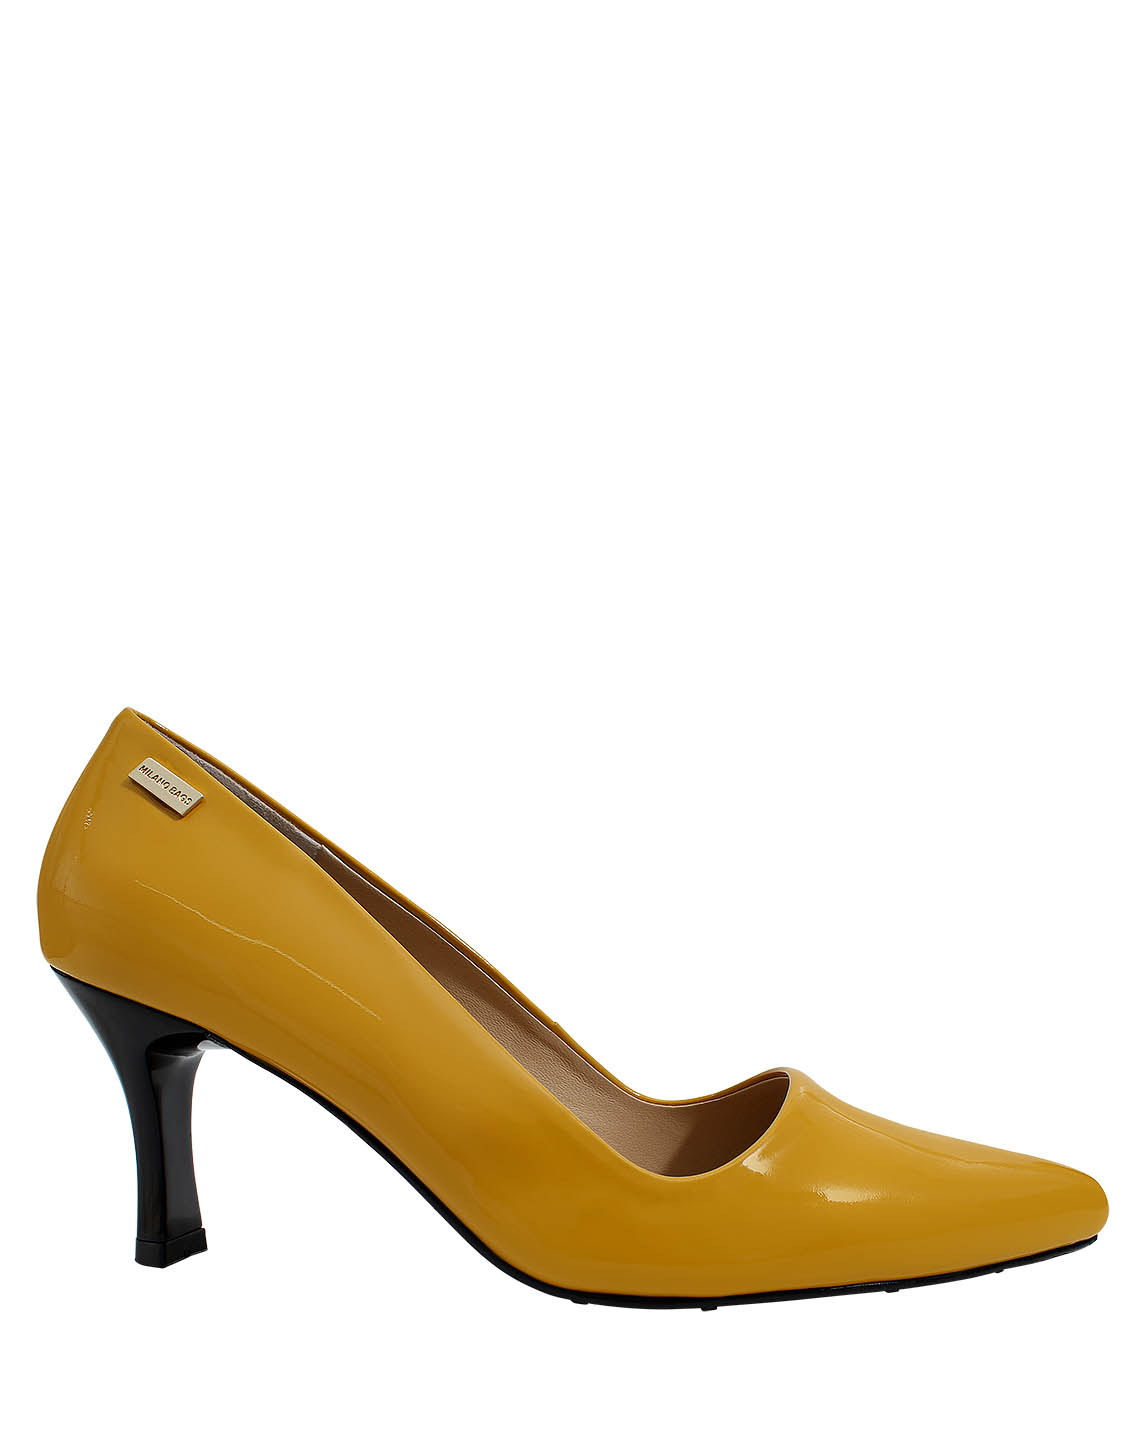 Calzado Reina FR -7892 Color Amarillo